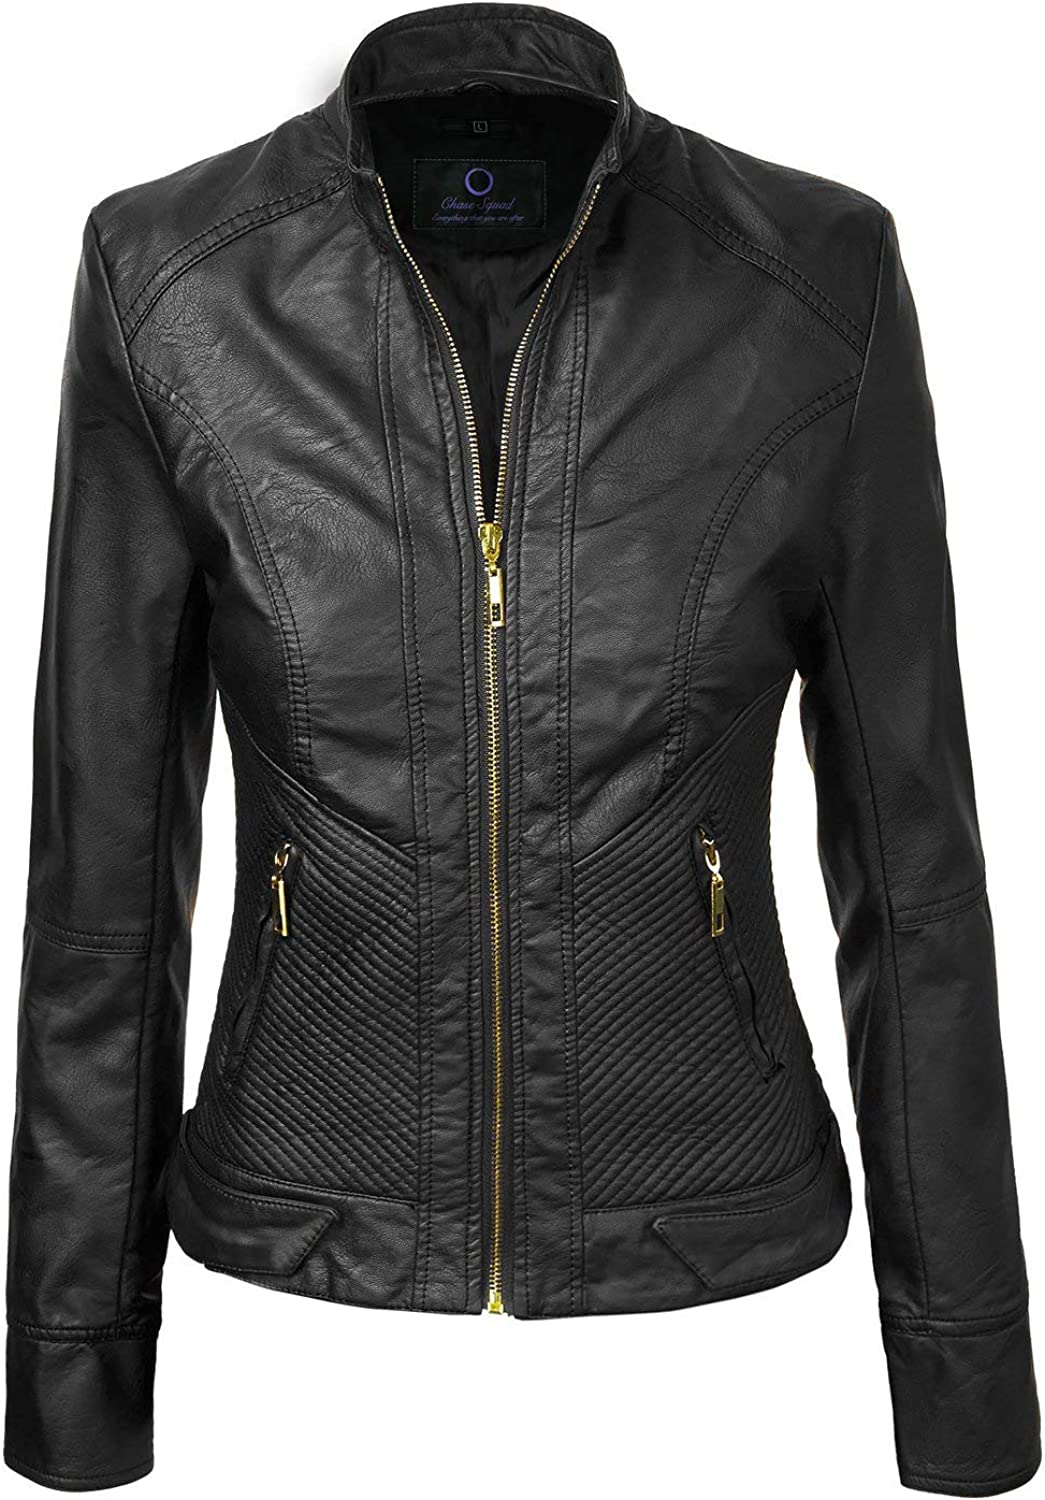 Chase Squad Pure Lambskin Leather Jackets for Women  Women Long Body Leather Jacket in Black